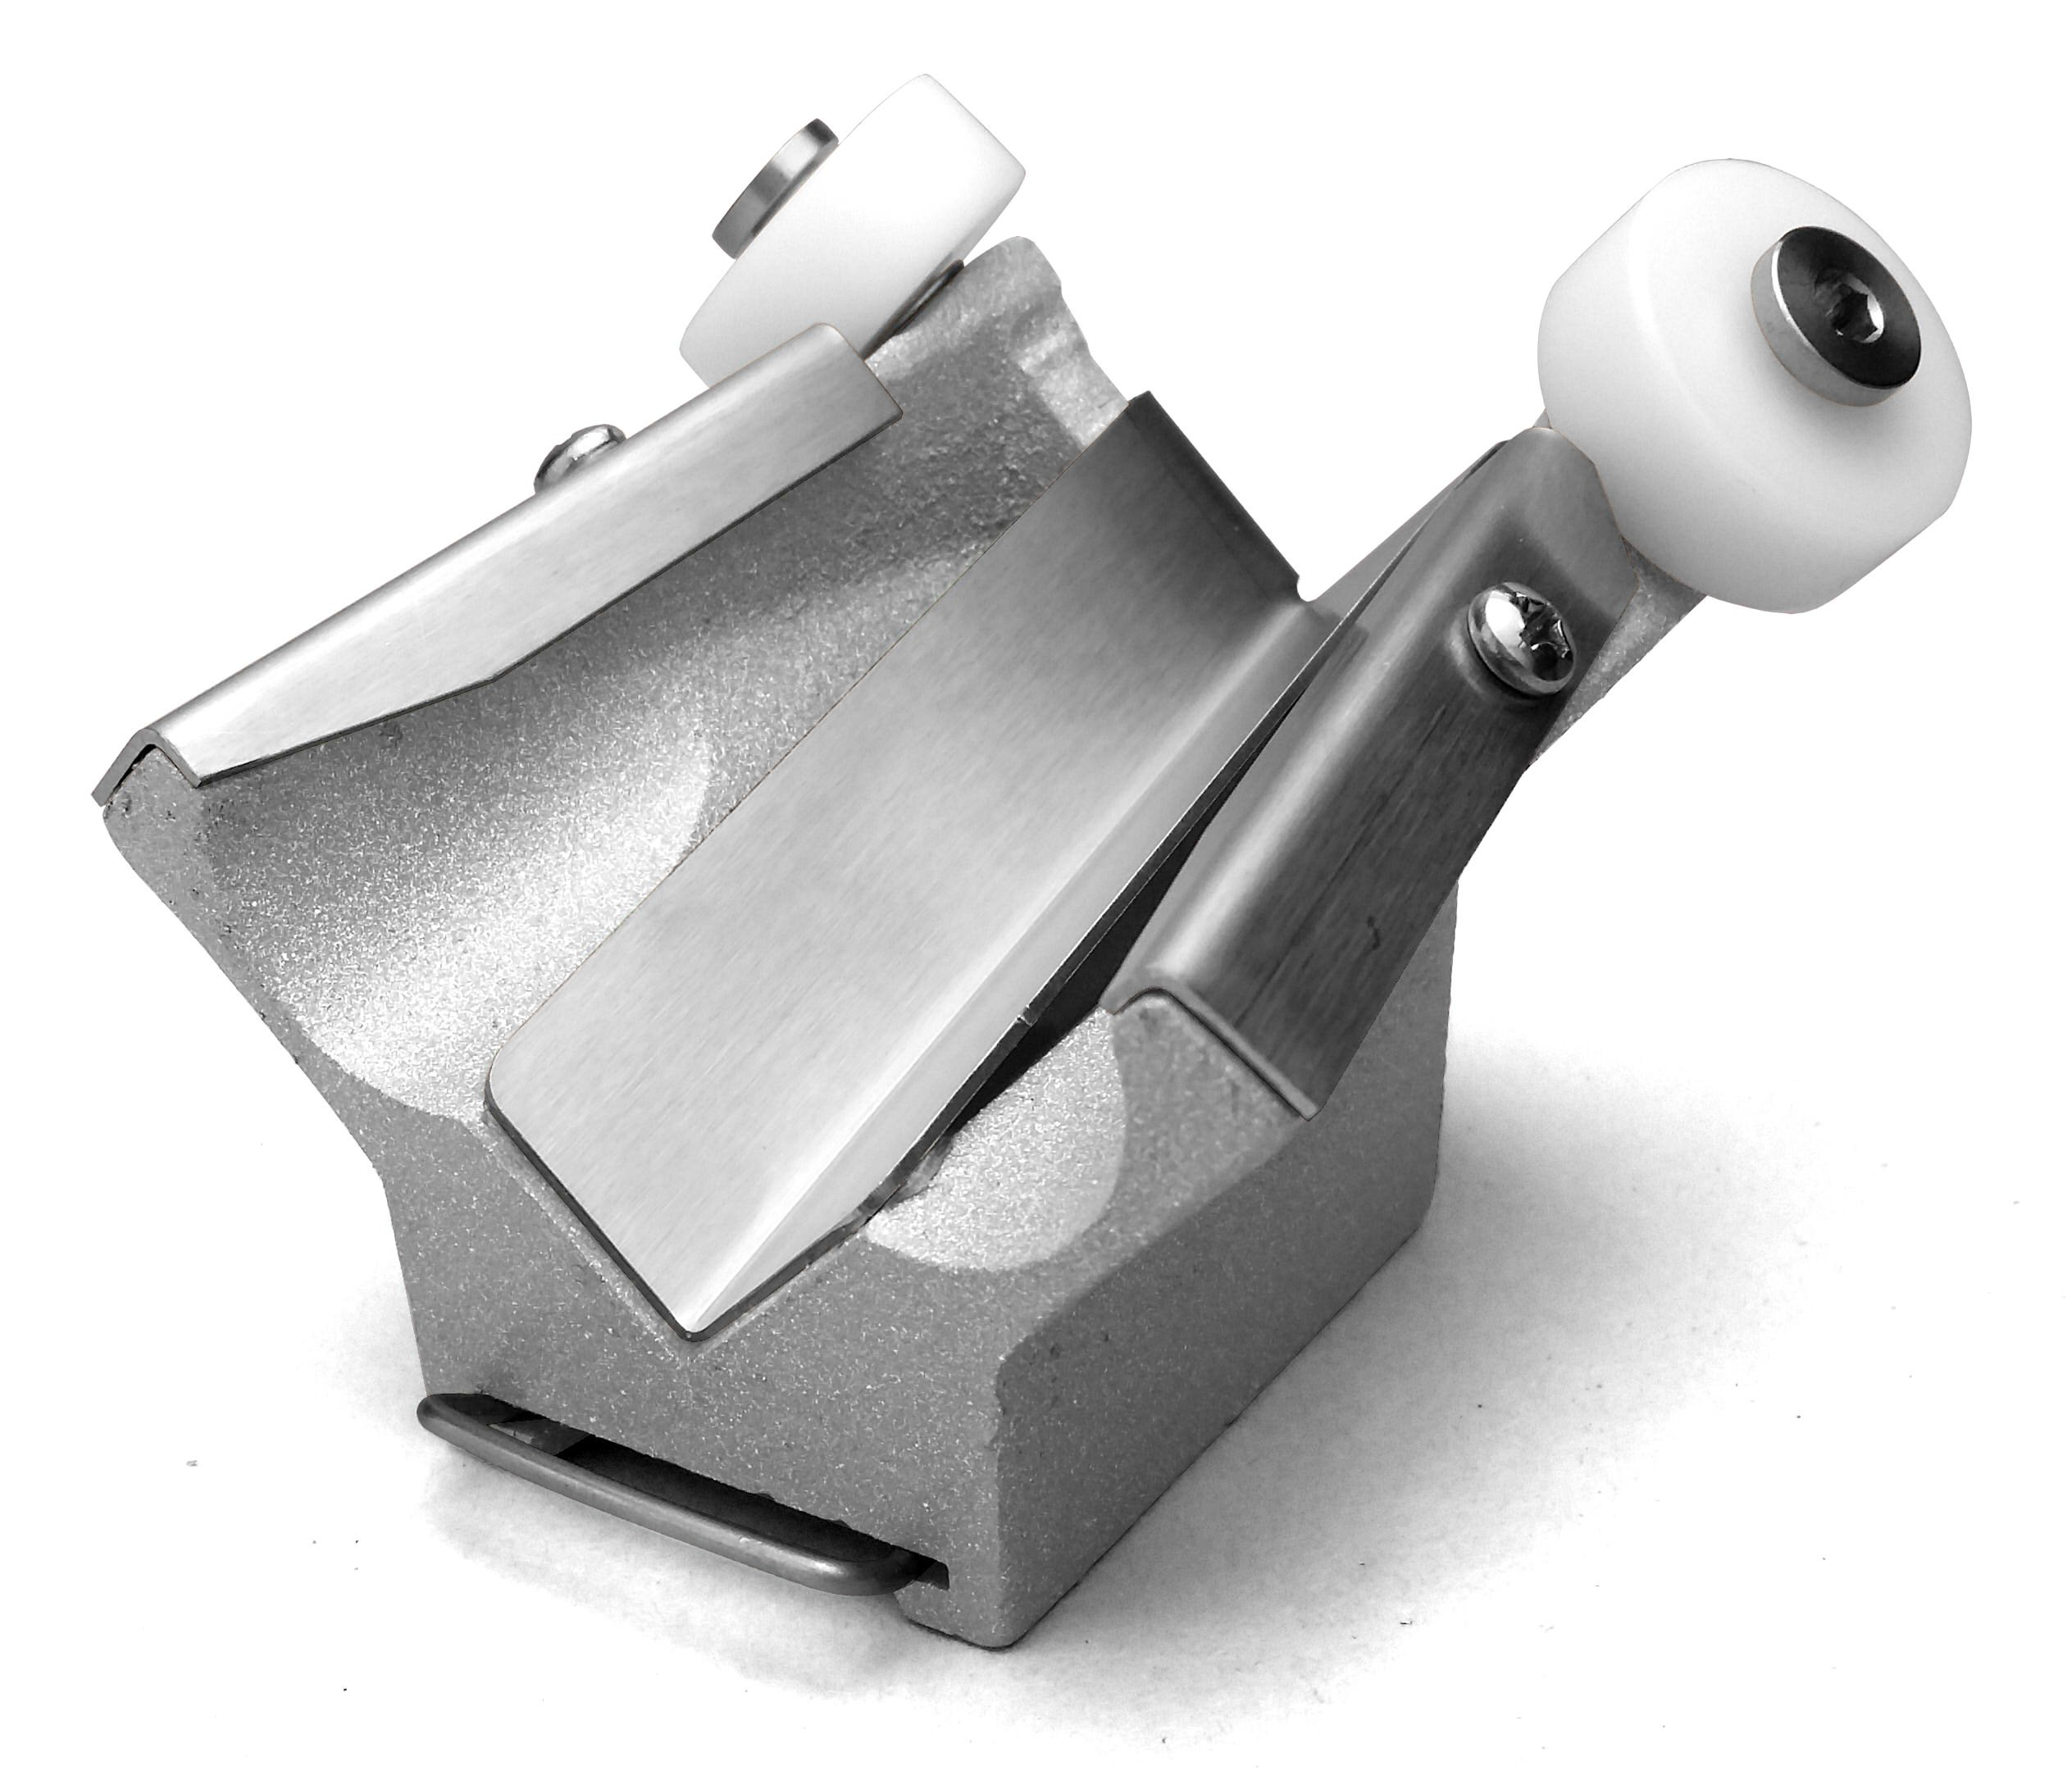 CanAm Tool F100 Standard Outside Corner Applicator Head – The Original For Mudding Outside Corners by CanAm Tool